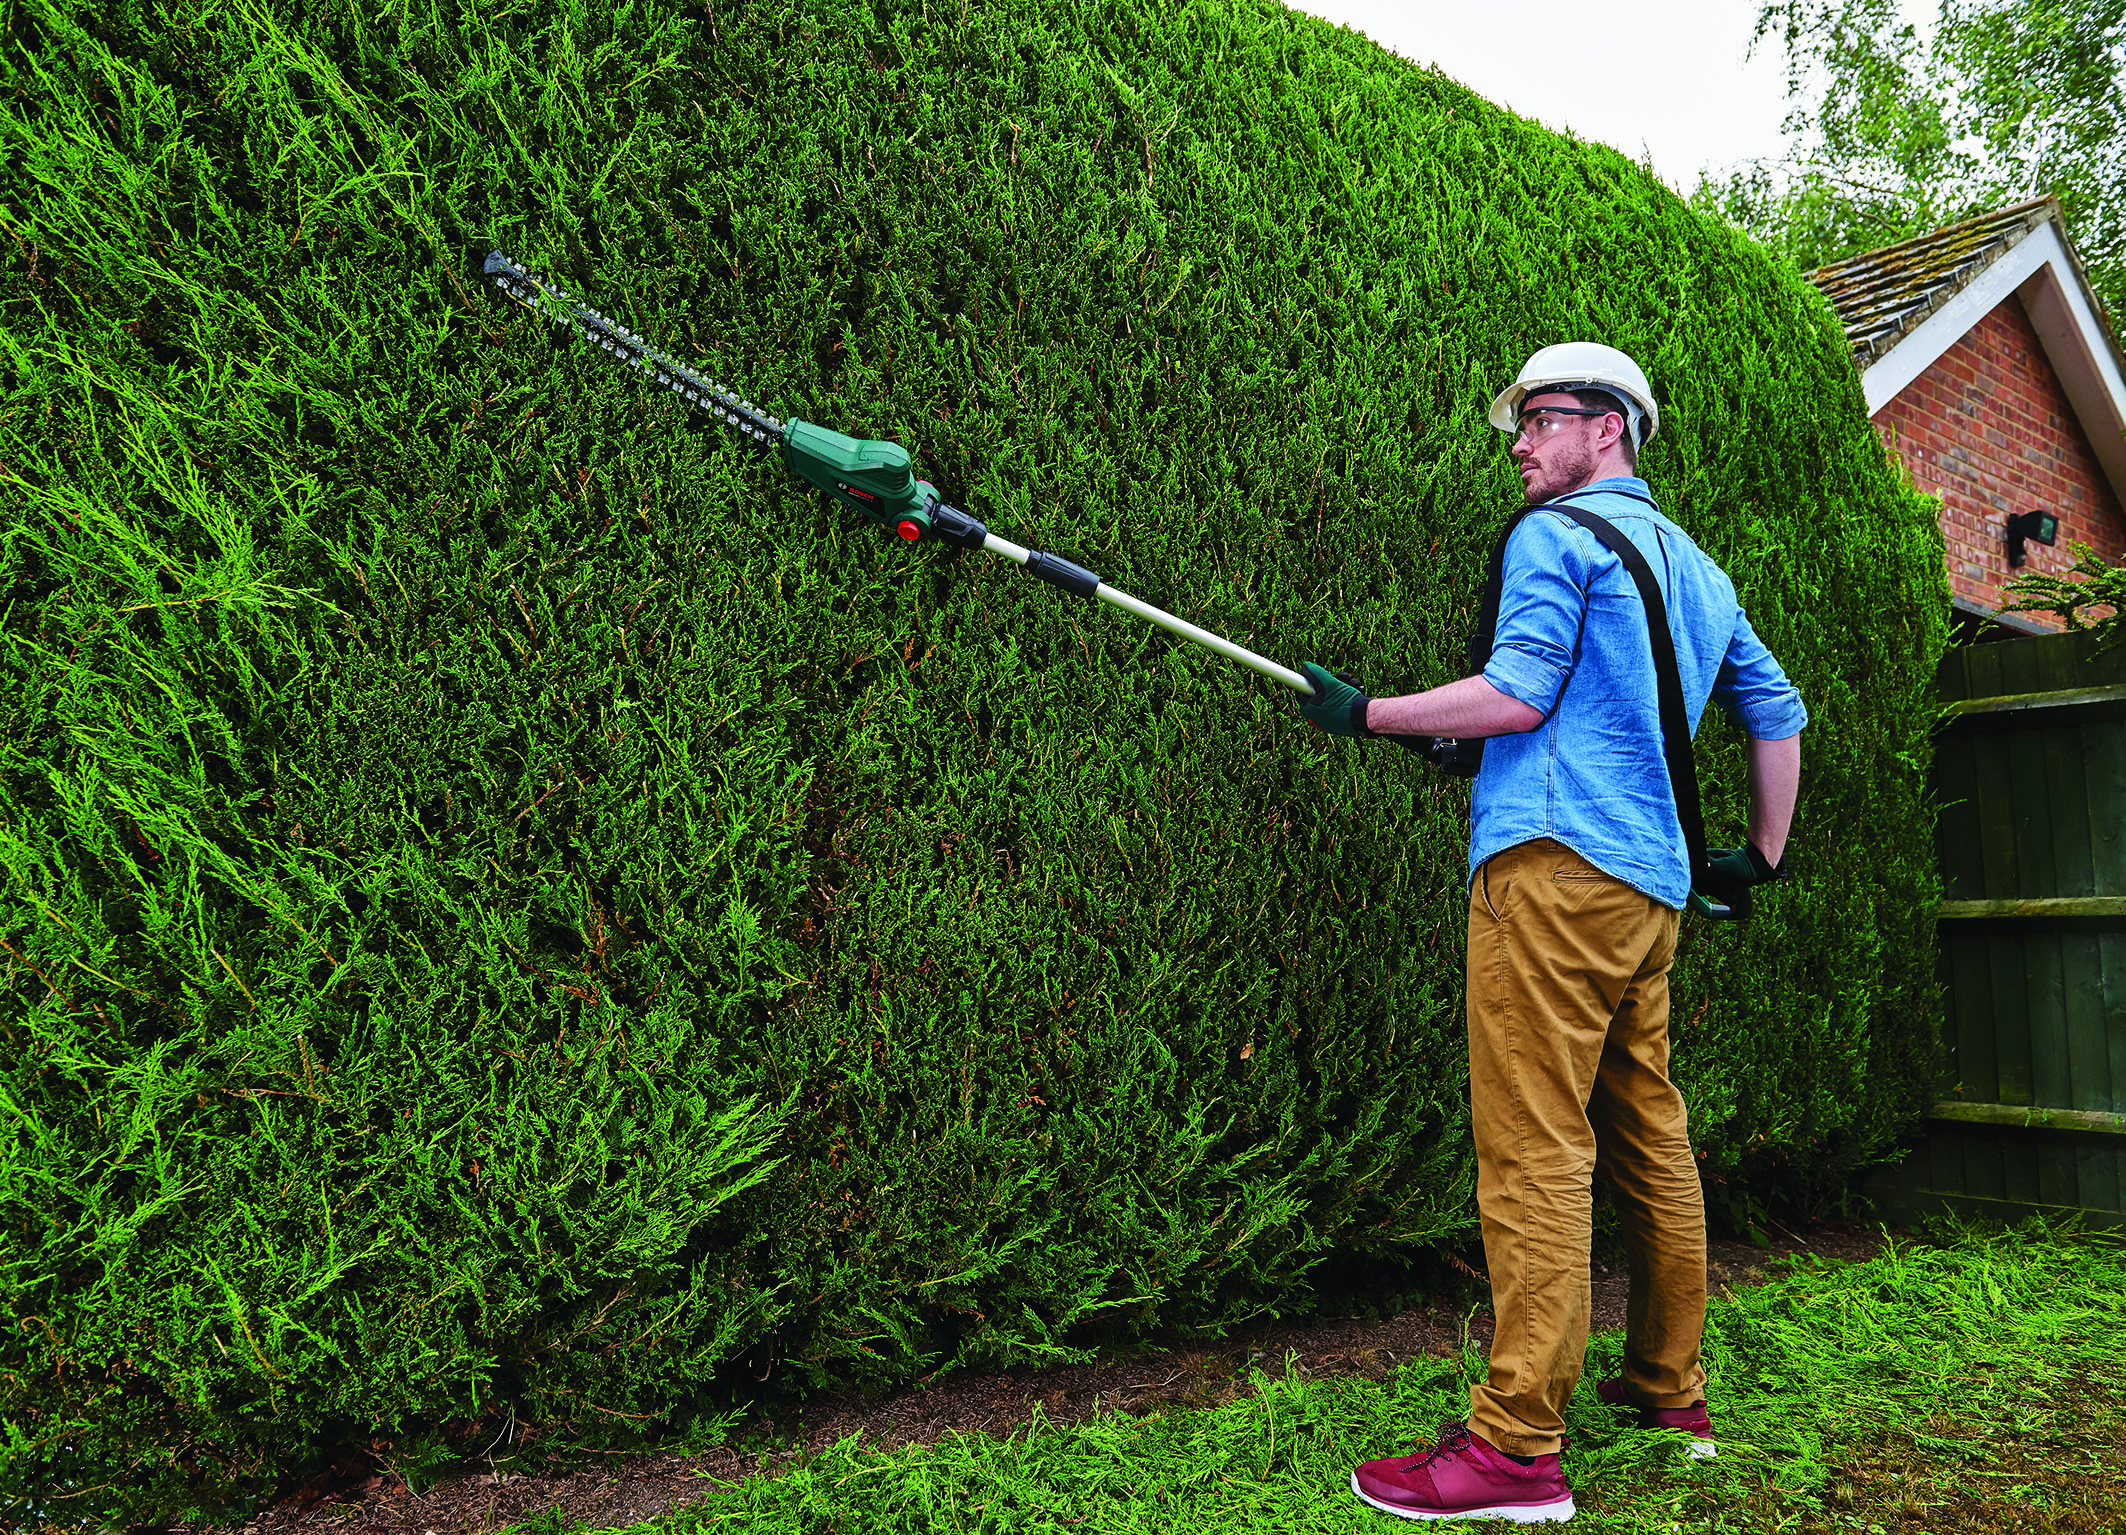 For trimming young shoots from tall hedges: UniversalHedgePole 18 hedgecutter from Bosch